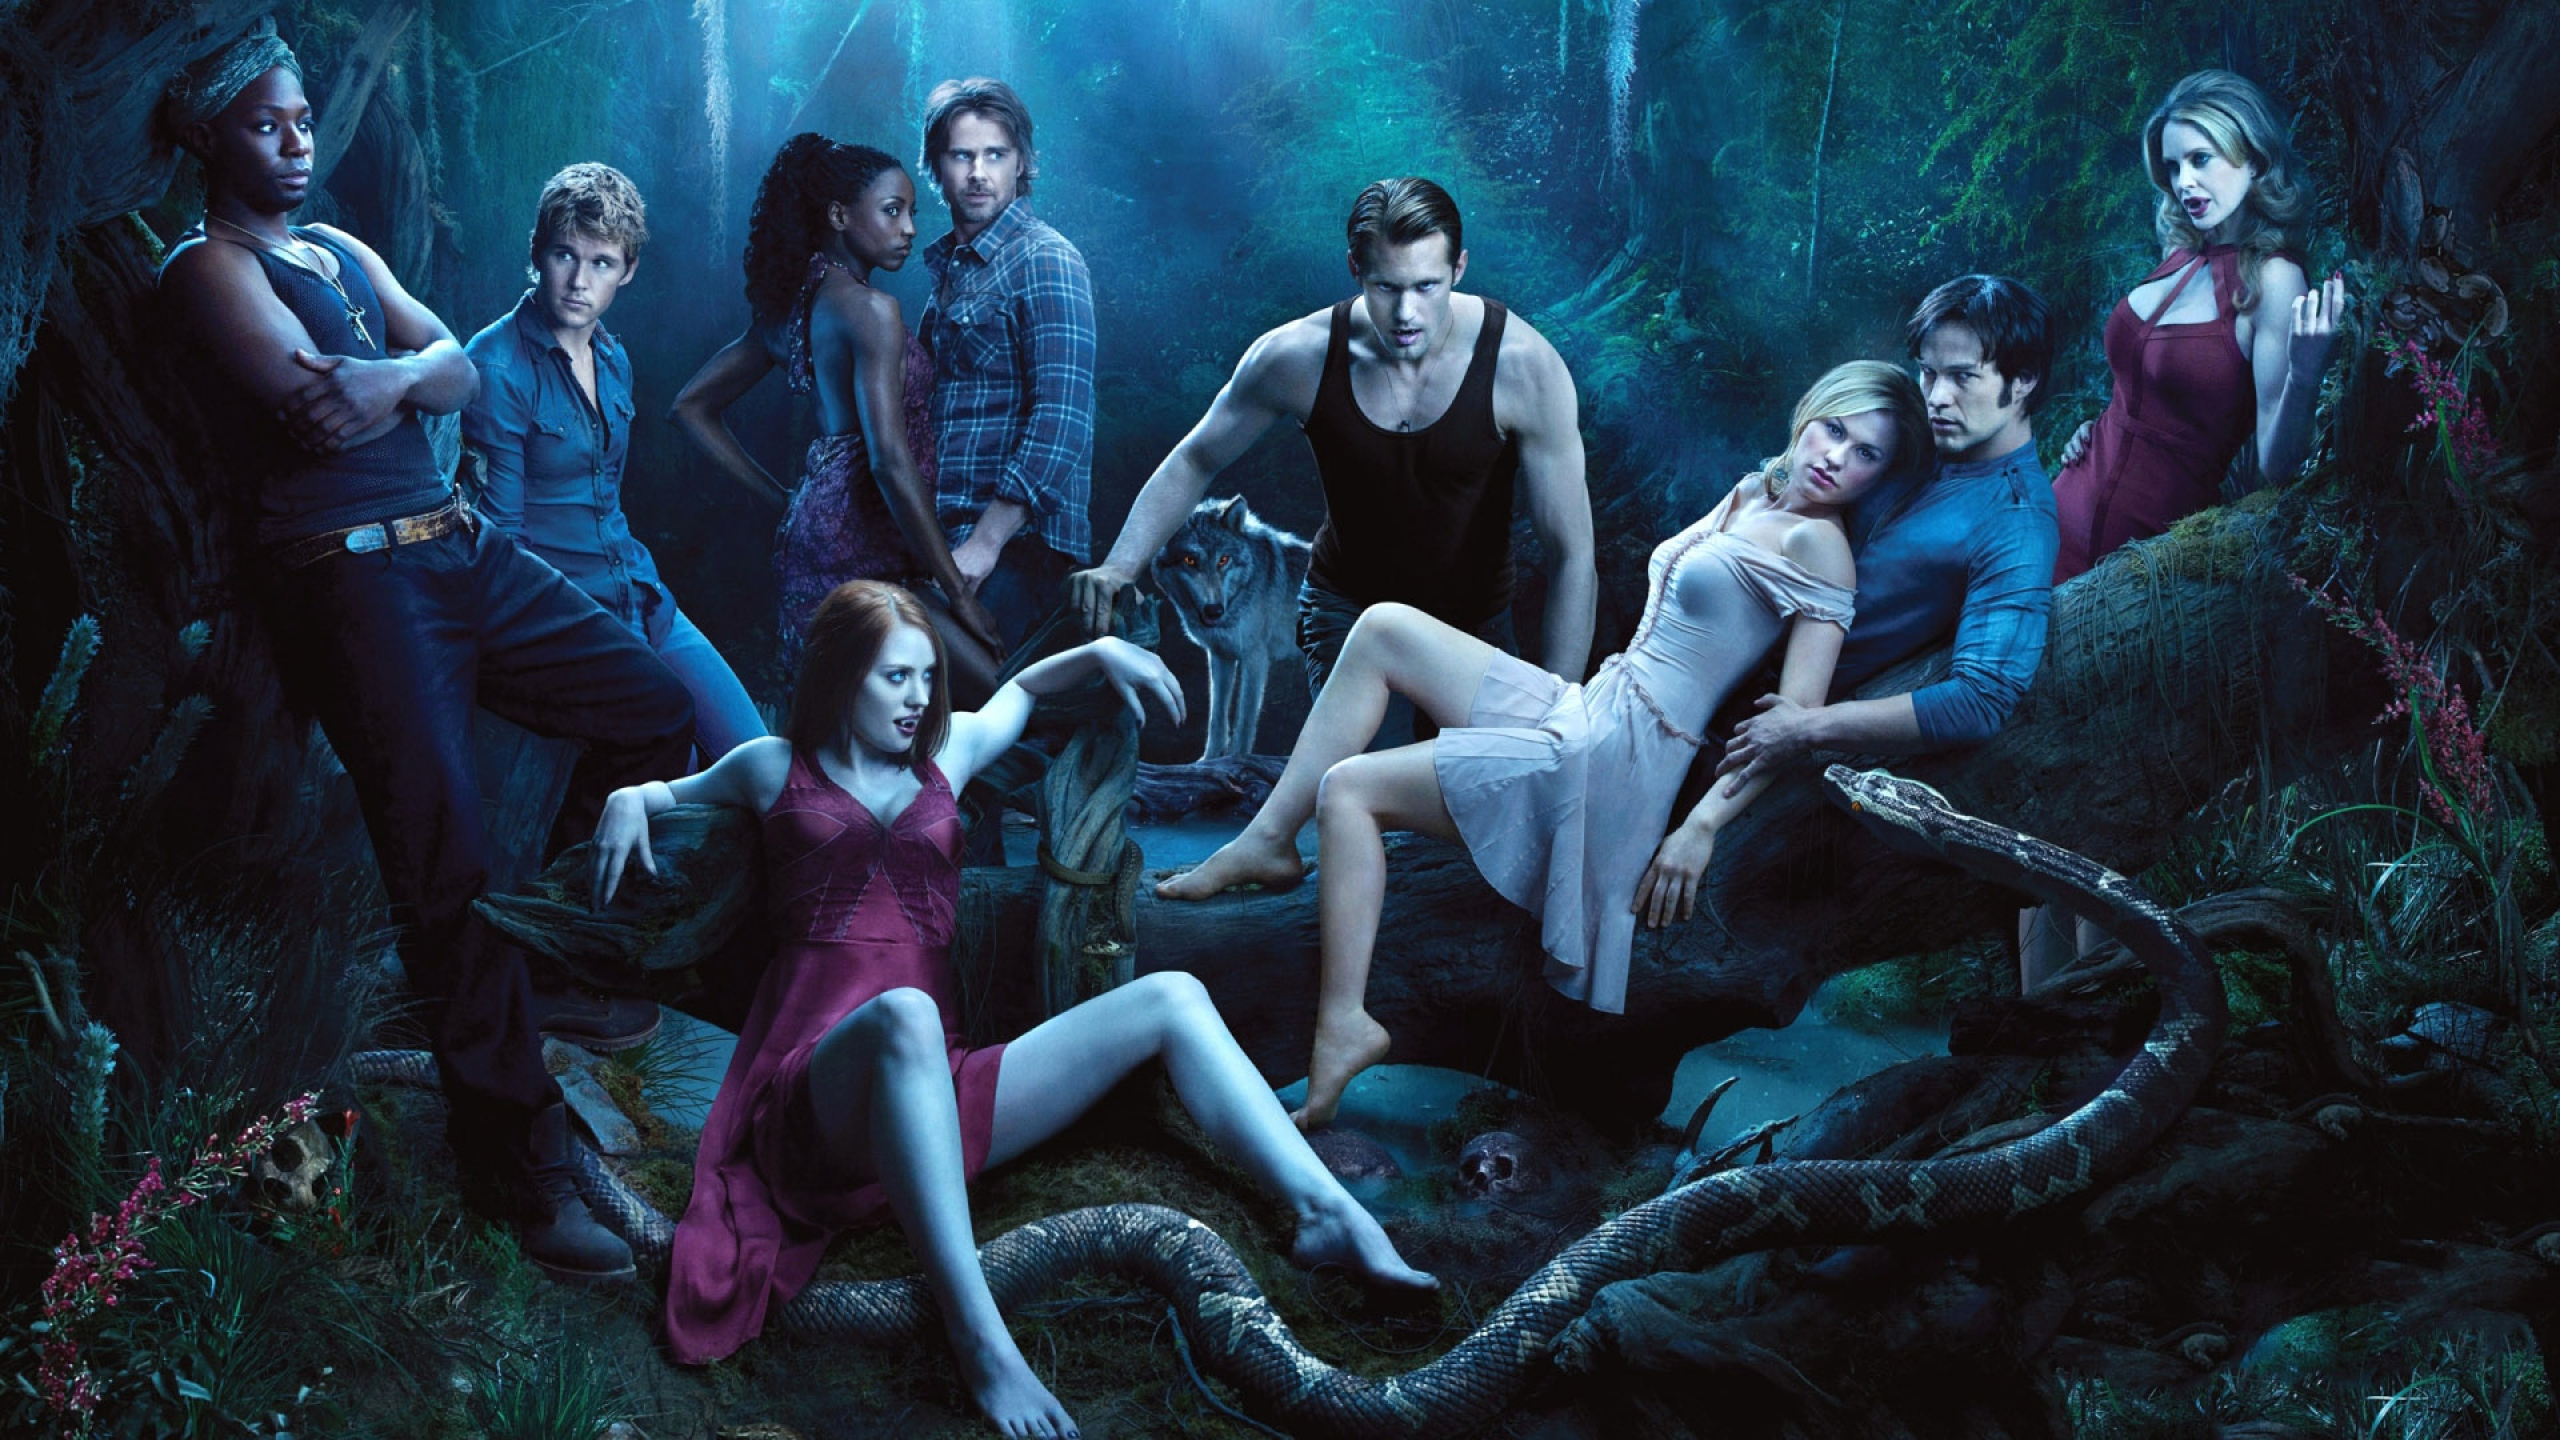 true_blood_sookie_stackhouse_bill_compton_eric_northman_sam_merlotte_jason_stackhouse_tara_thornton_pam_de_beaufort_jessica_hamby_lafayette_reynolds_93690_2560x1440